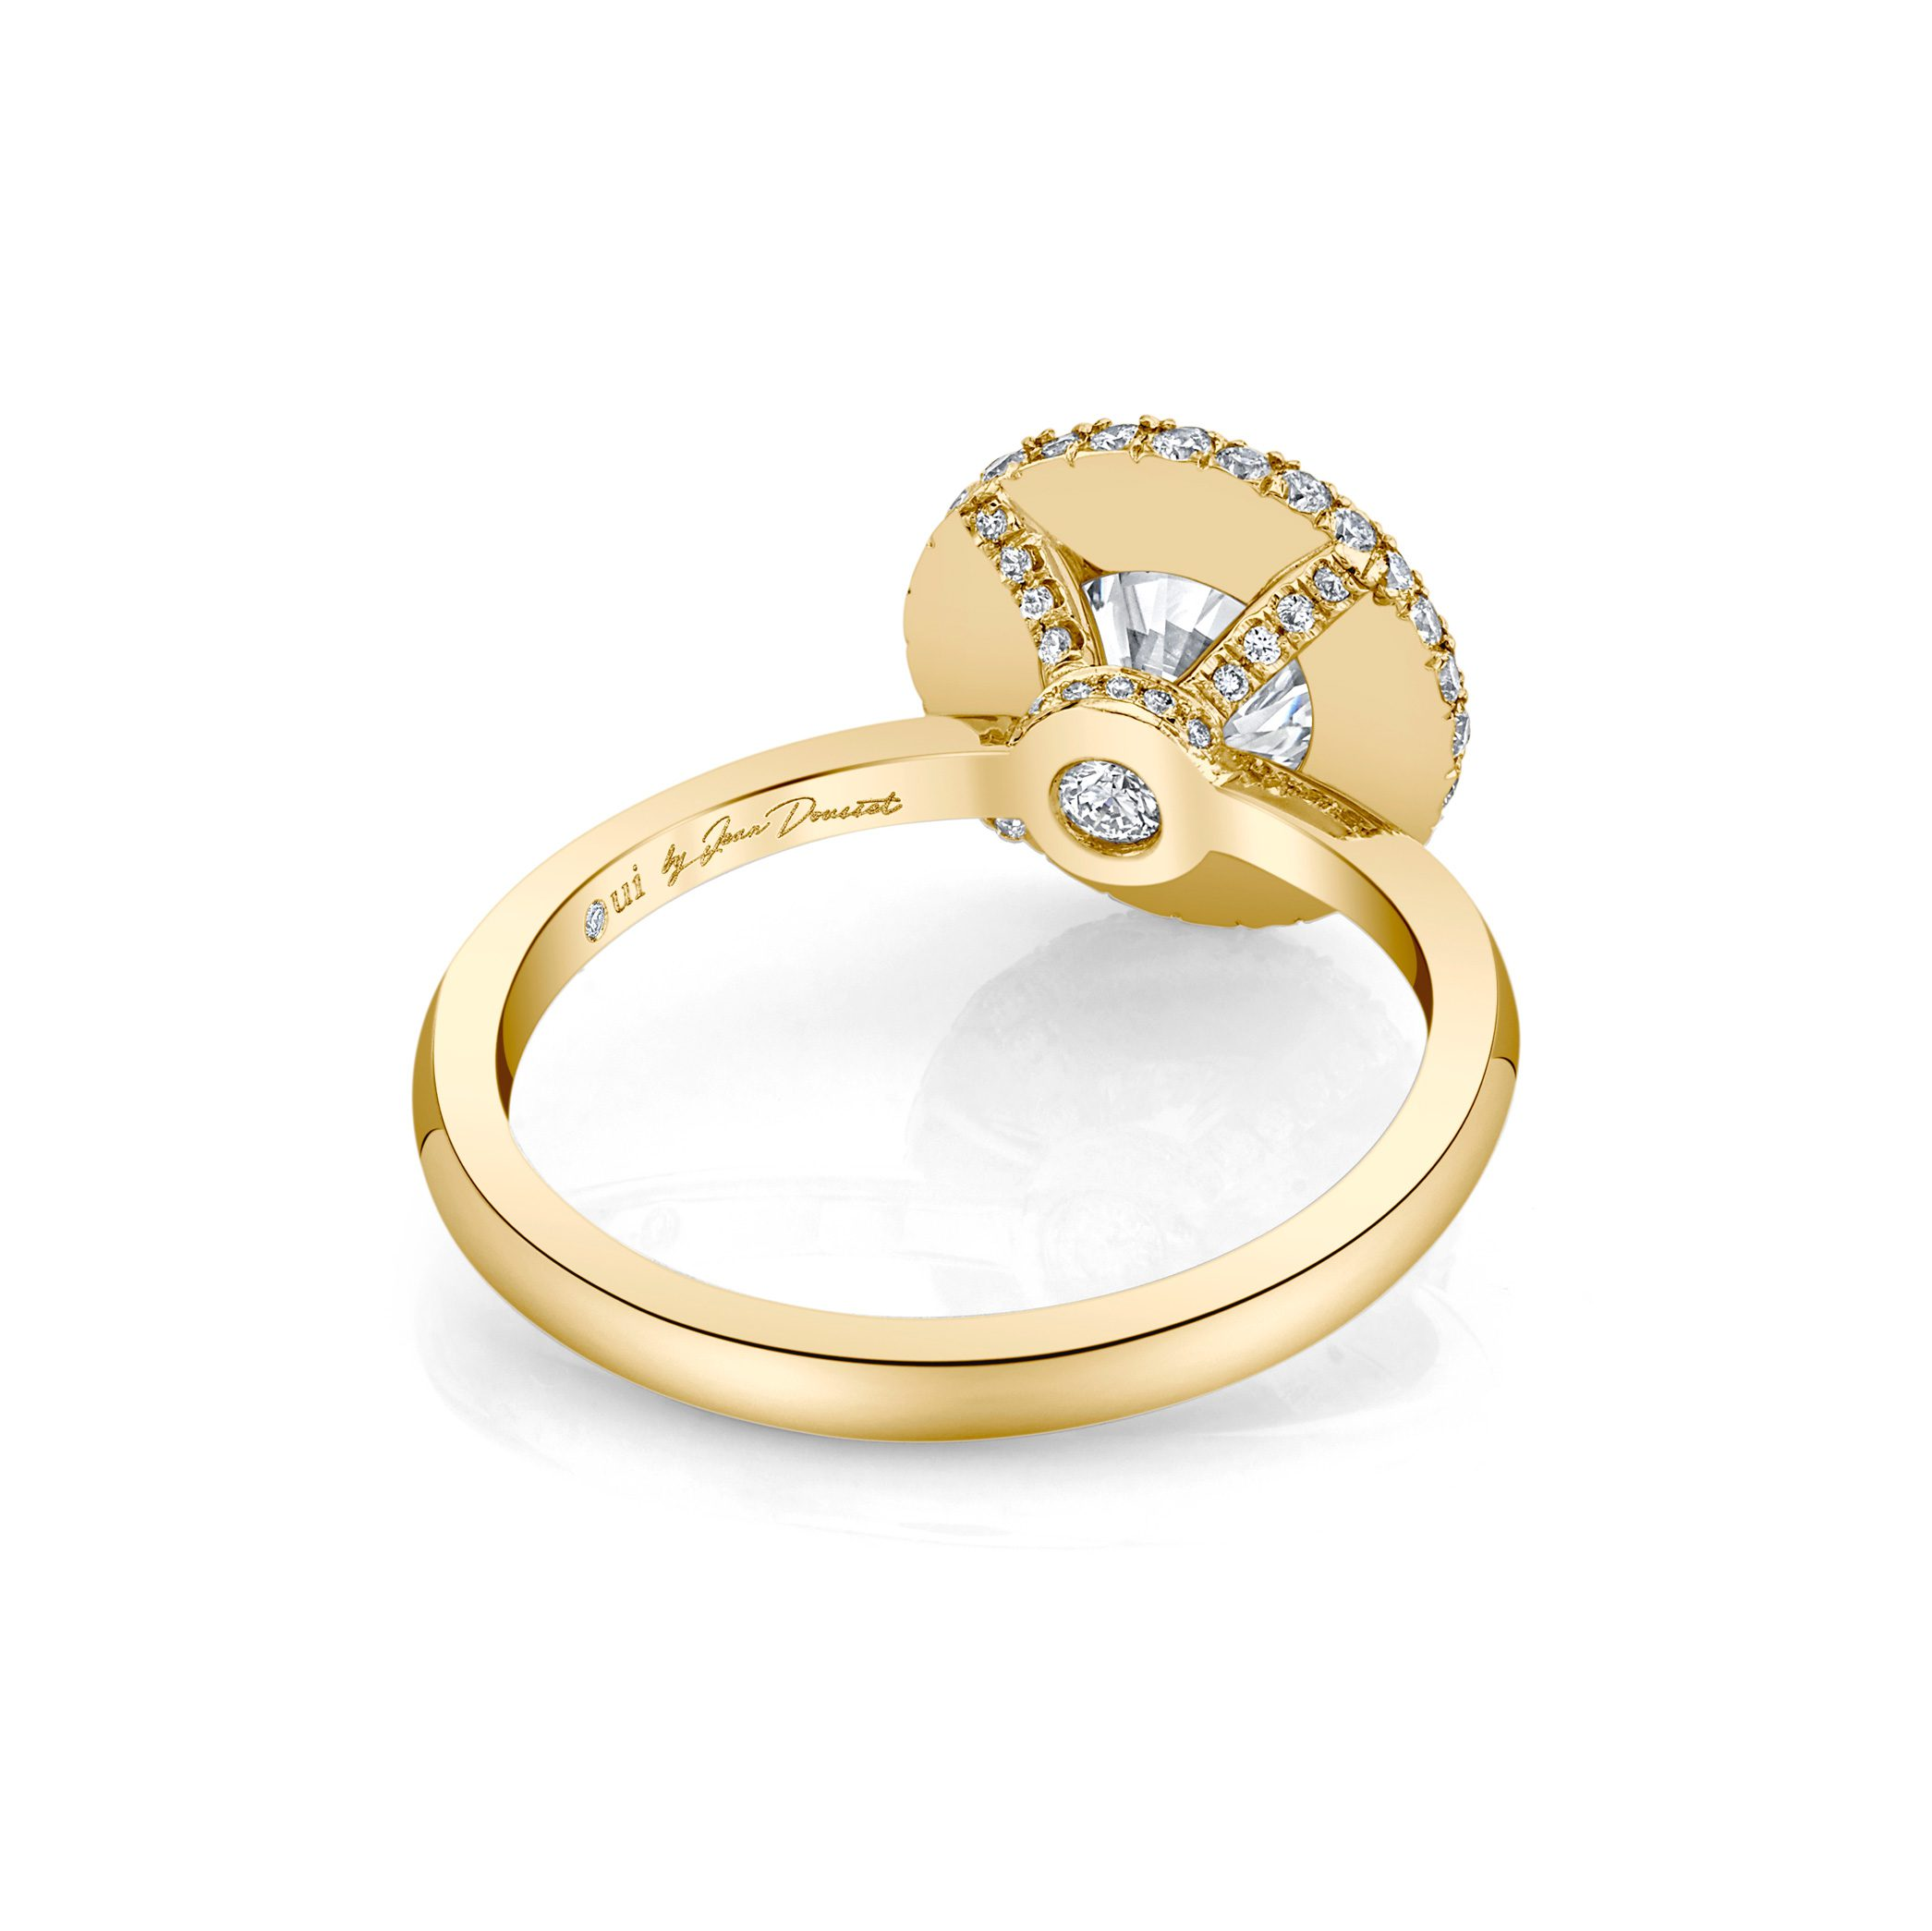 Colette Round Brilliant Seamless Halo® Engagement Ring with a solid band in 18k Yellow Gold Back View by Oui by Jean Dousset